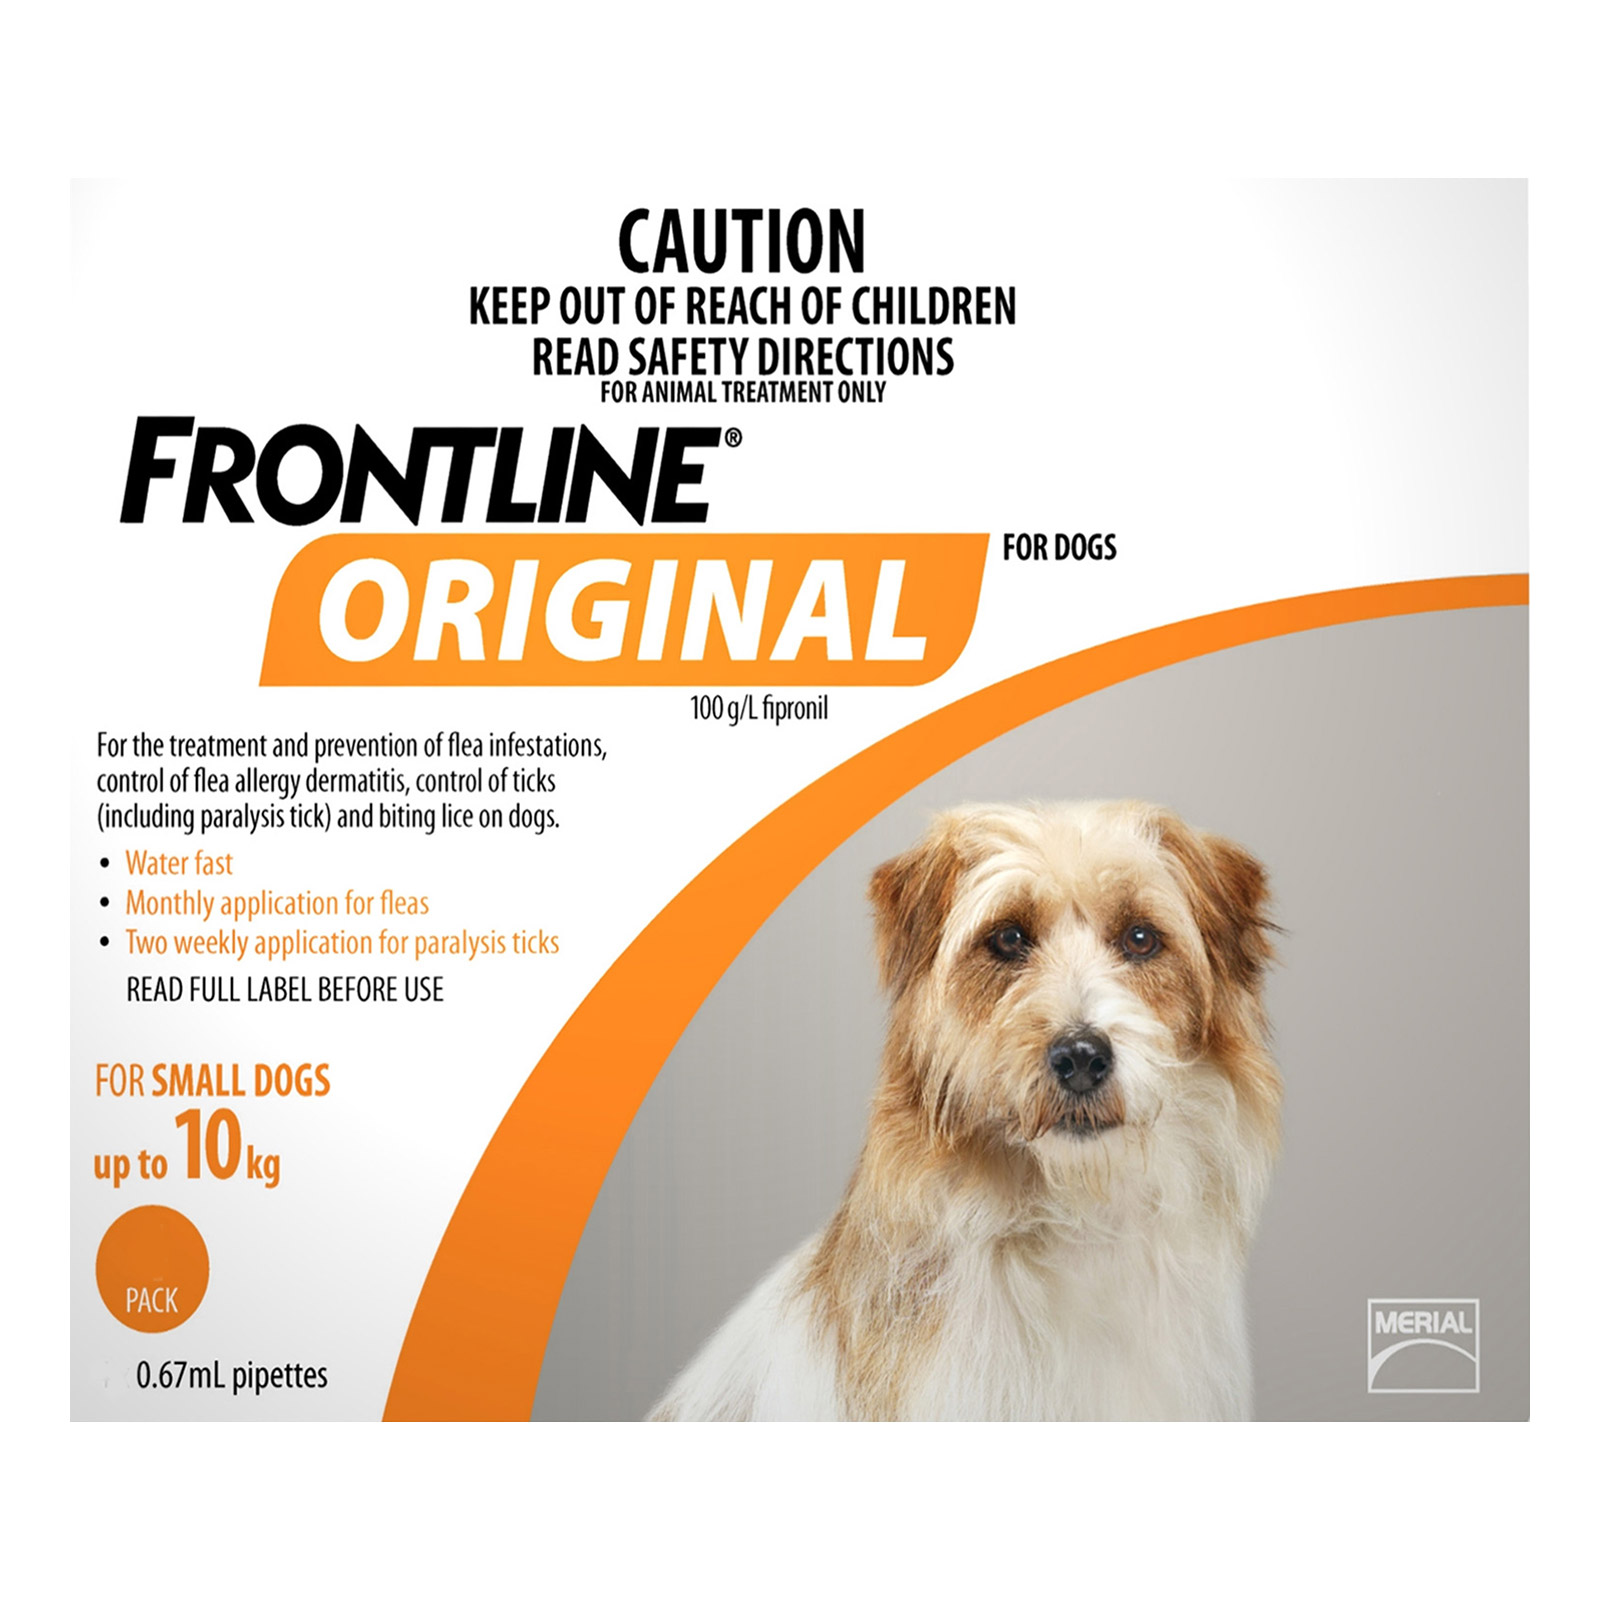 For Small Dogs Up To 10Kgs (Orange)